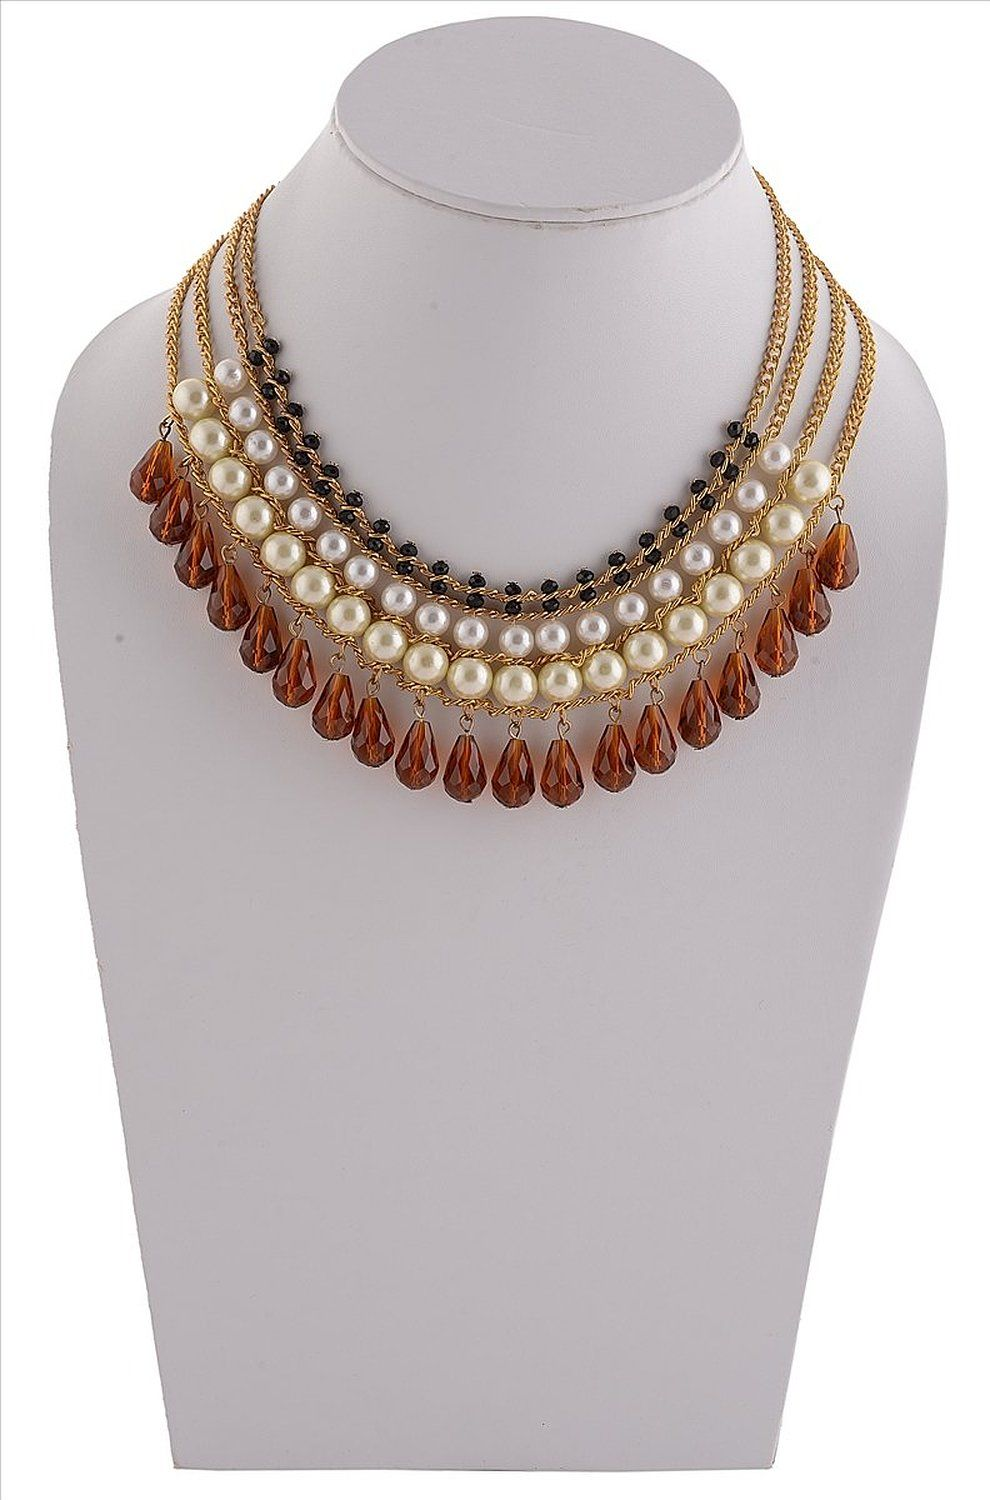 bal necklace massive online jewelry buy beads baltic and raw baroque necklaces amber fine pendants